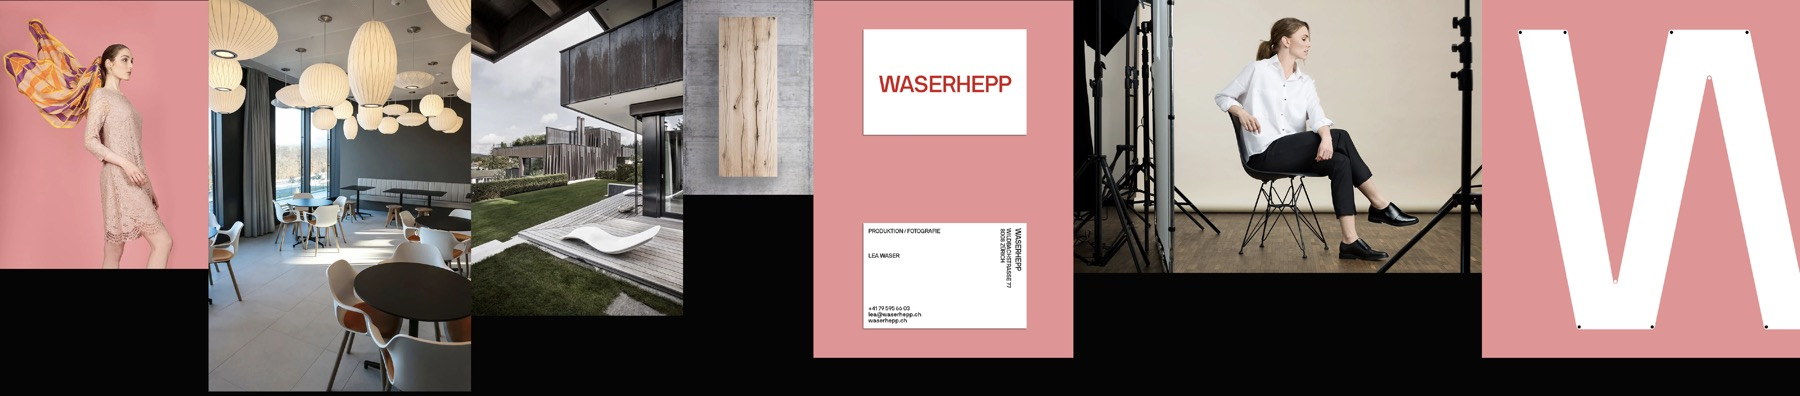 another studio waserhepp fotografie logo design